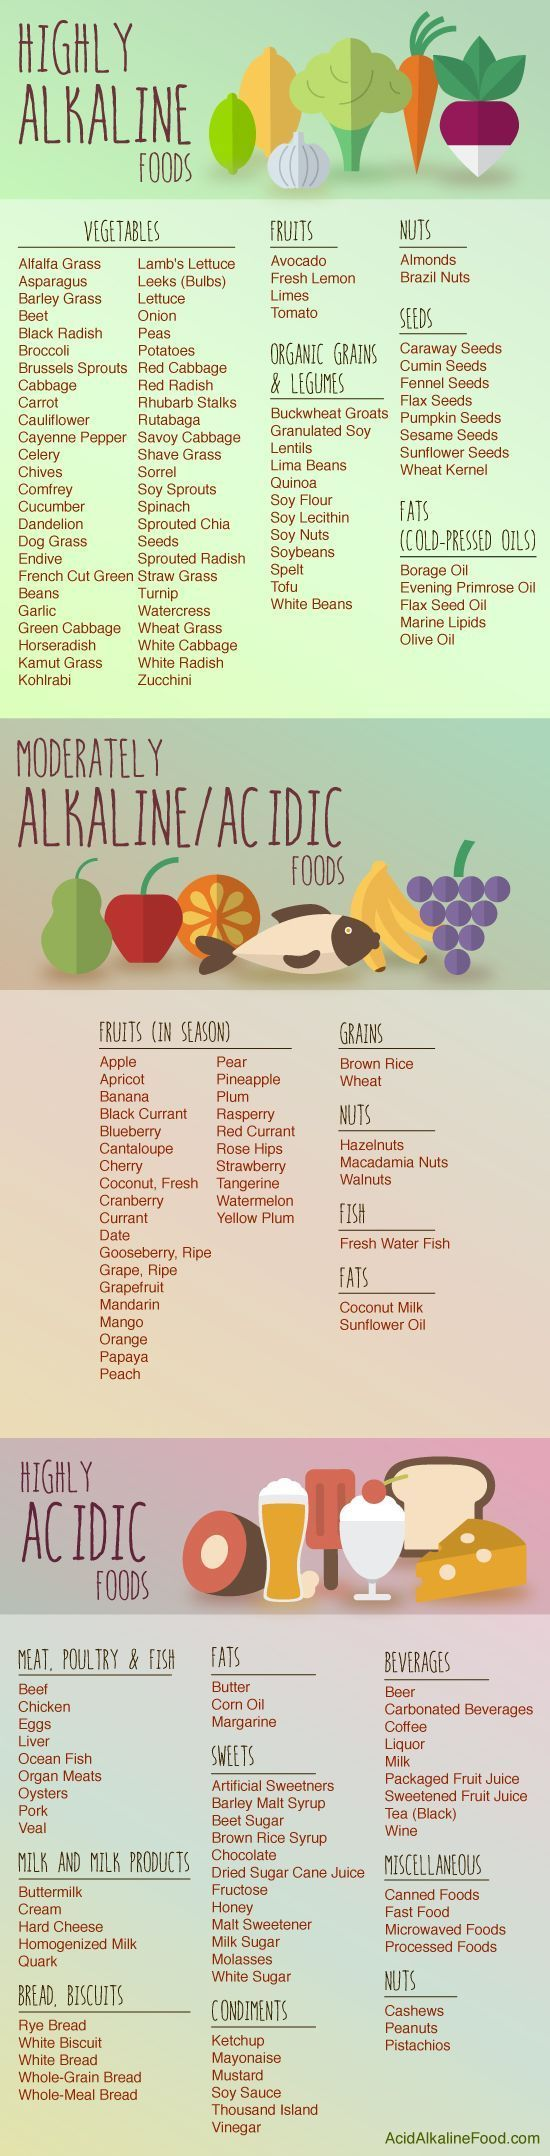 14 Most Alkaline Foods & Drinks (& Why They are Actually Good for You):